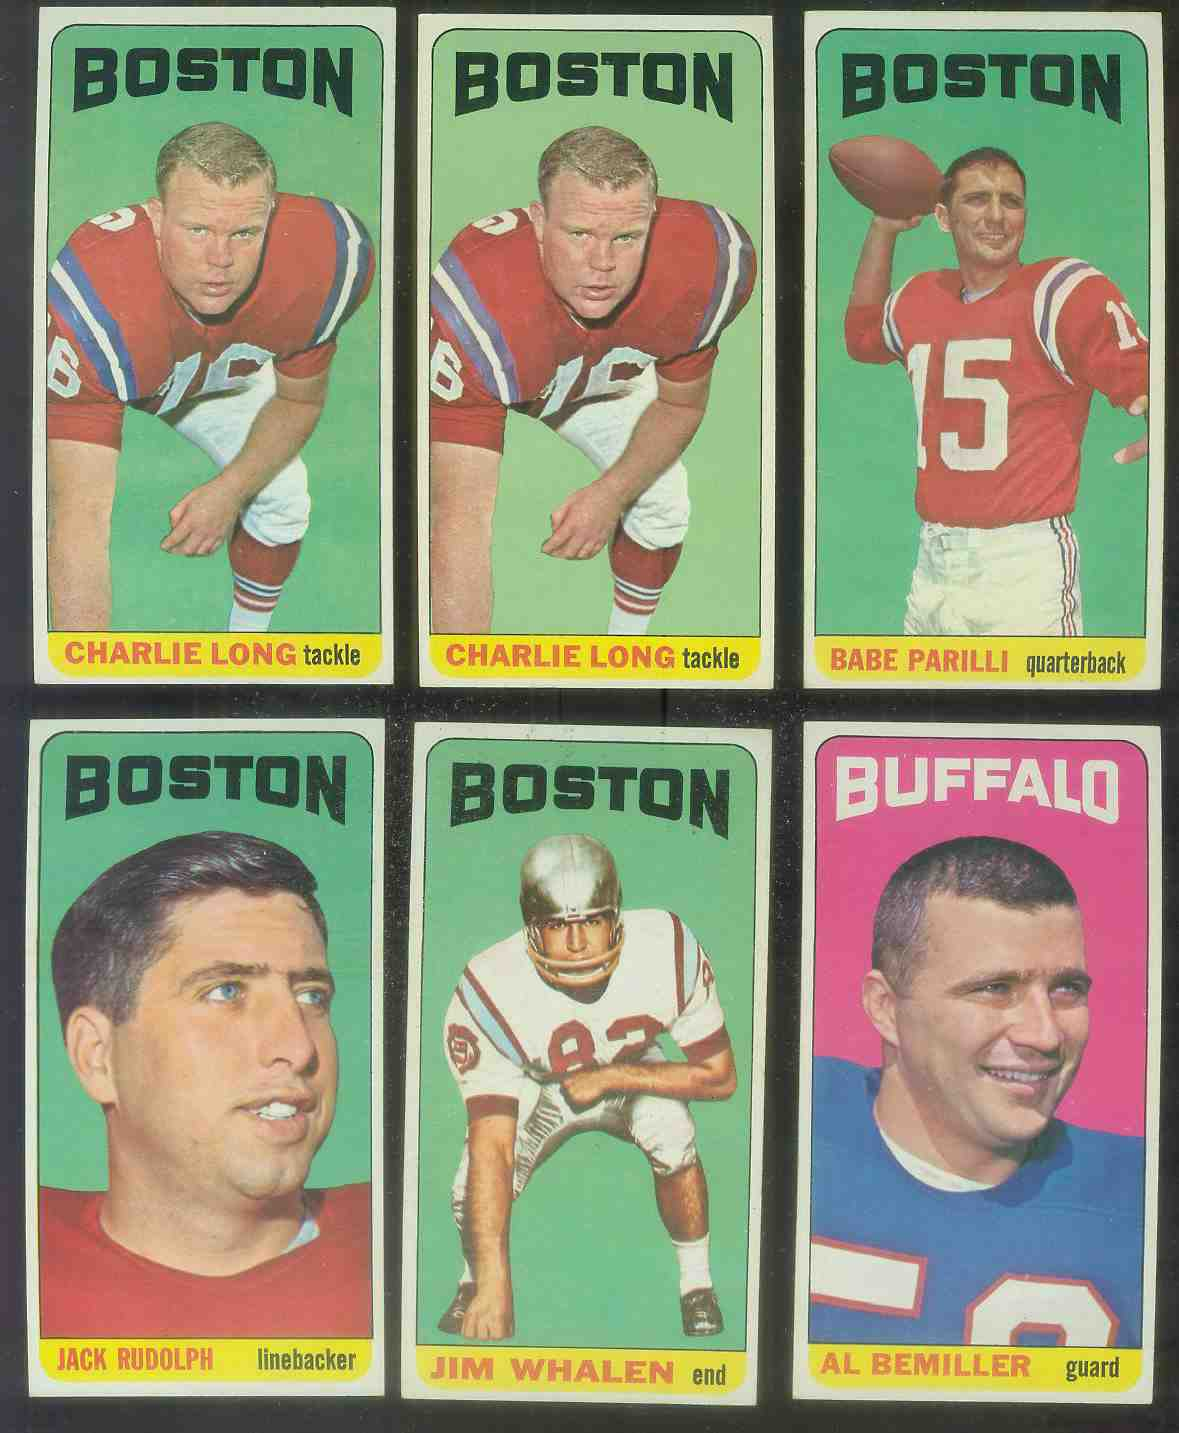 1965 Topps FB #.19 Jack Rudolph (Boston Patriots) Football cards value